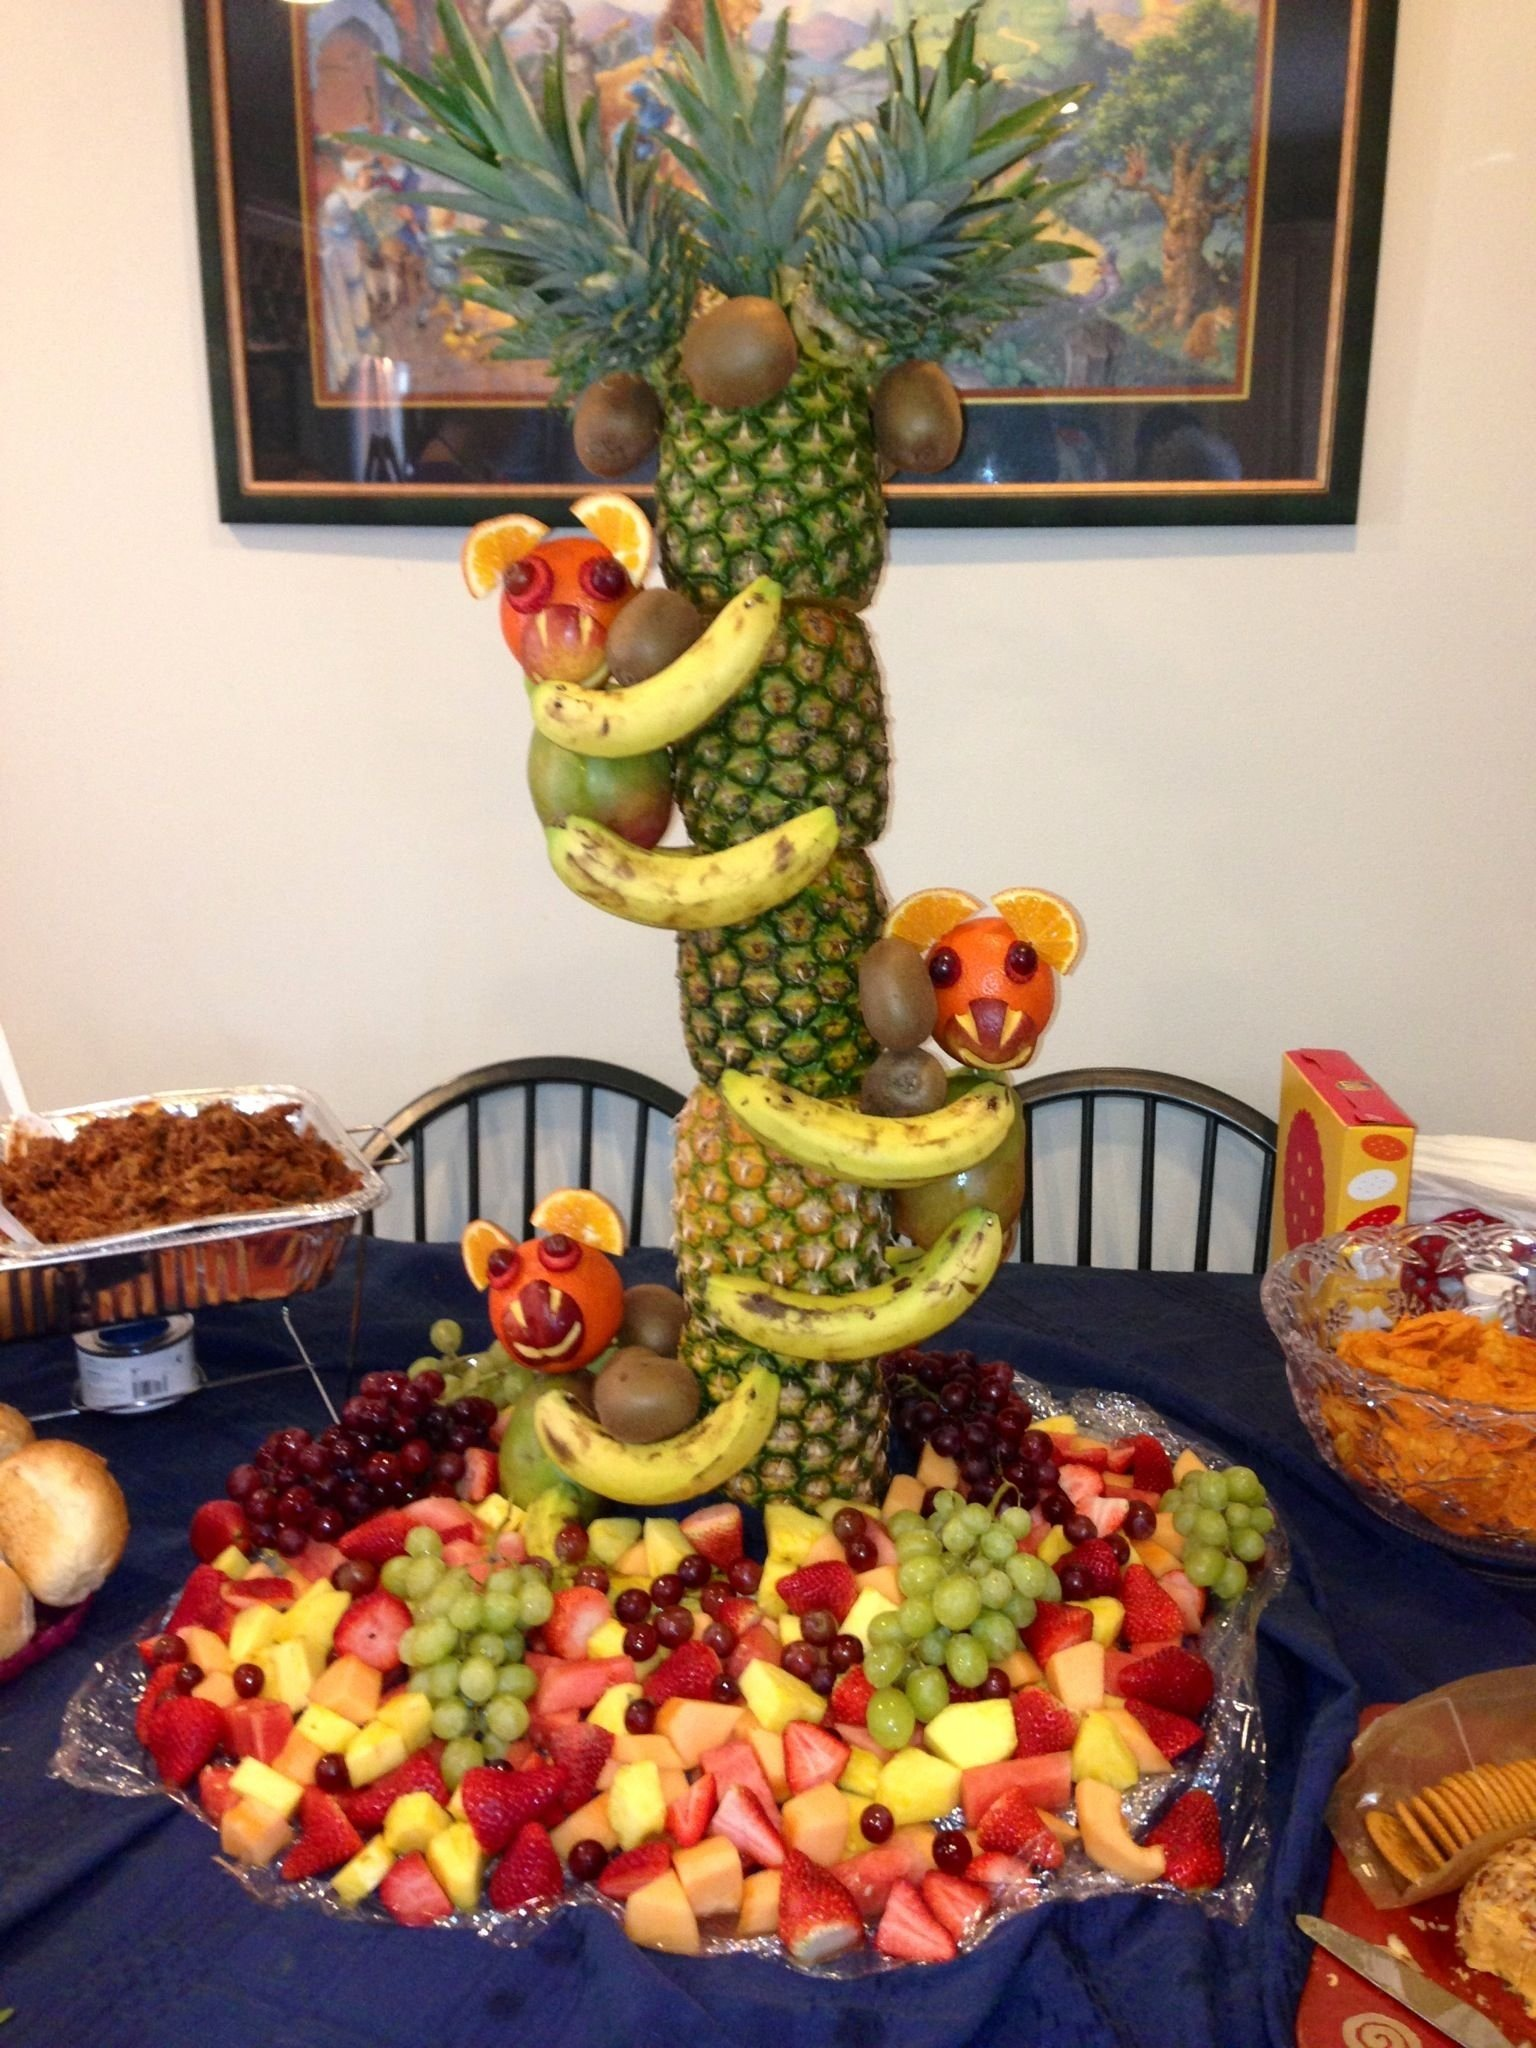 10 Best Jungle Baby Shower Food Ideas jungle themed birthday party ideas jungle theme parties jungle 2021